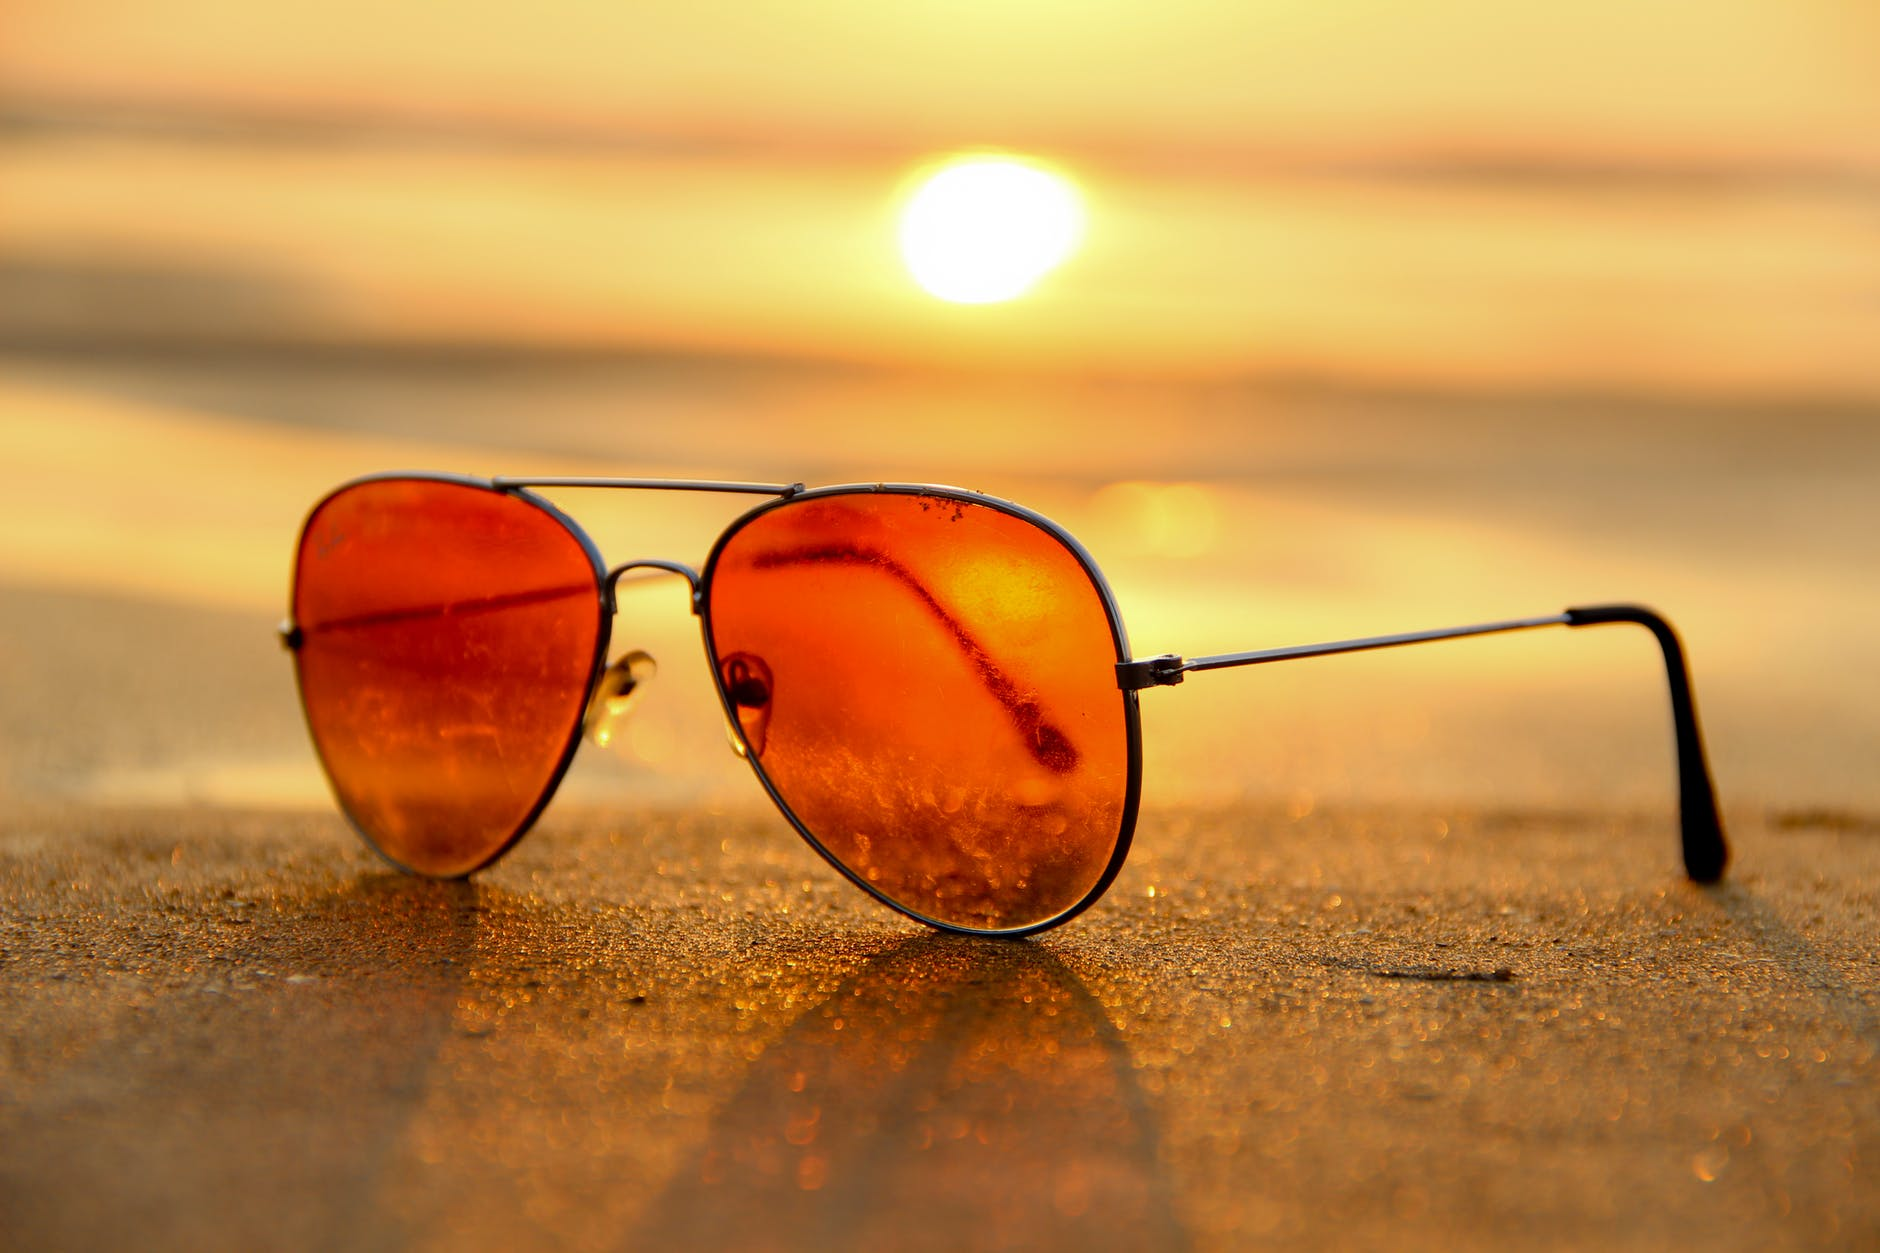 Sunglasses resting on sand with setting sun